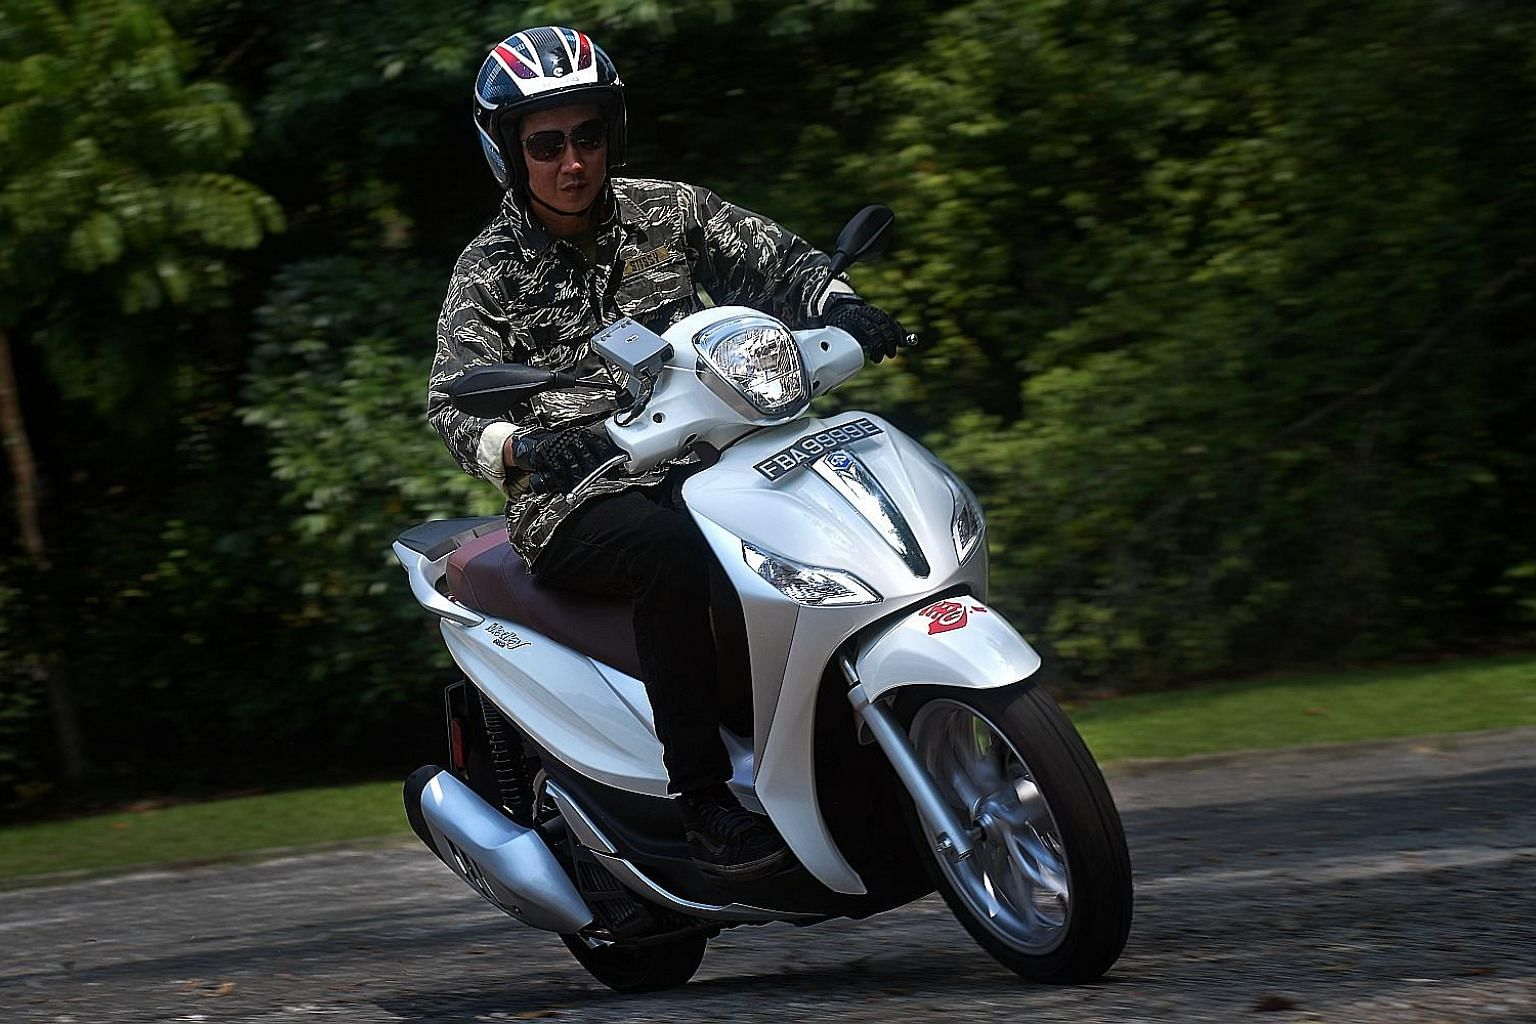 The Piaggio Medley 150 ABS will not set any speed record with its 155cc single-cylinder engine, but its prowess is in its ability to conserve fuel. The automatic scooter can achieve around 45km on a litre of petrol.